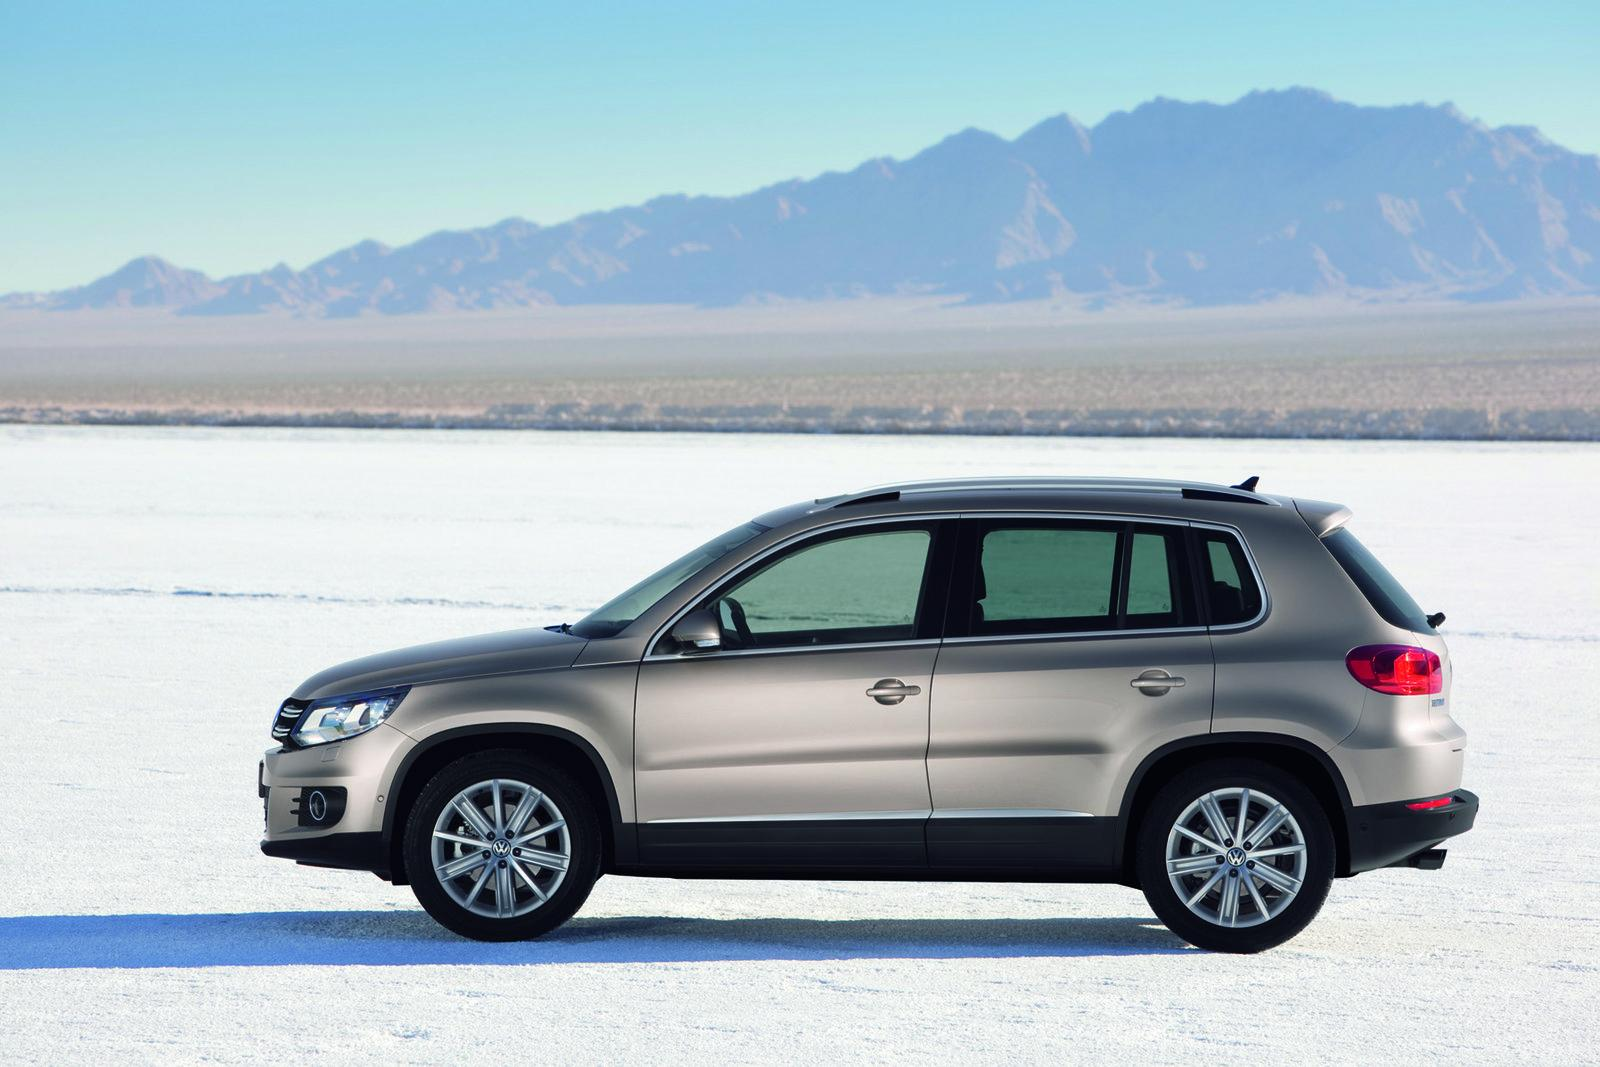 VW Passat and Tiguan 19 VW to Upgrade Passat and Tiguan in North America